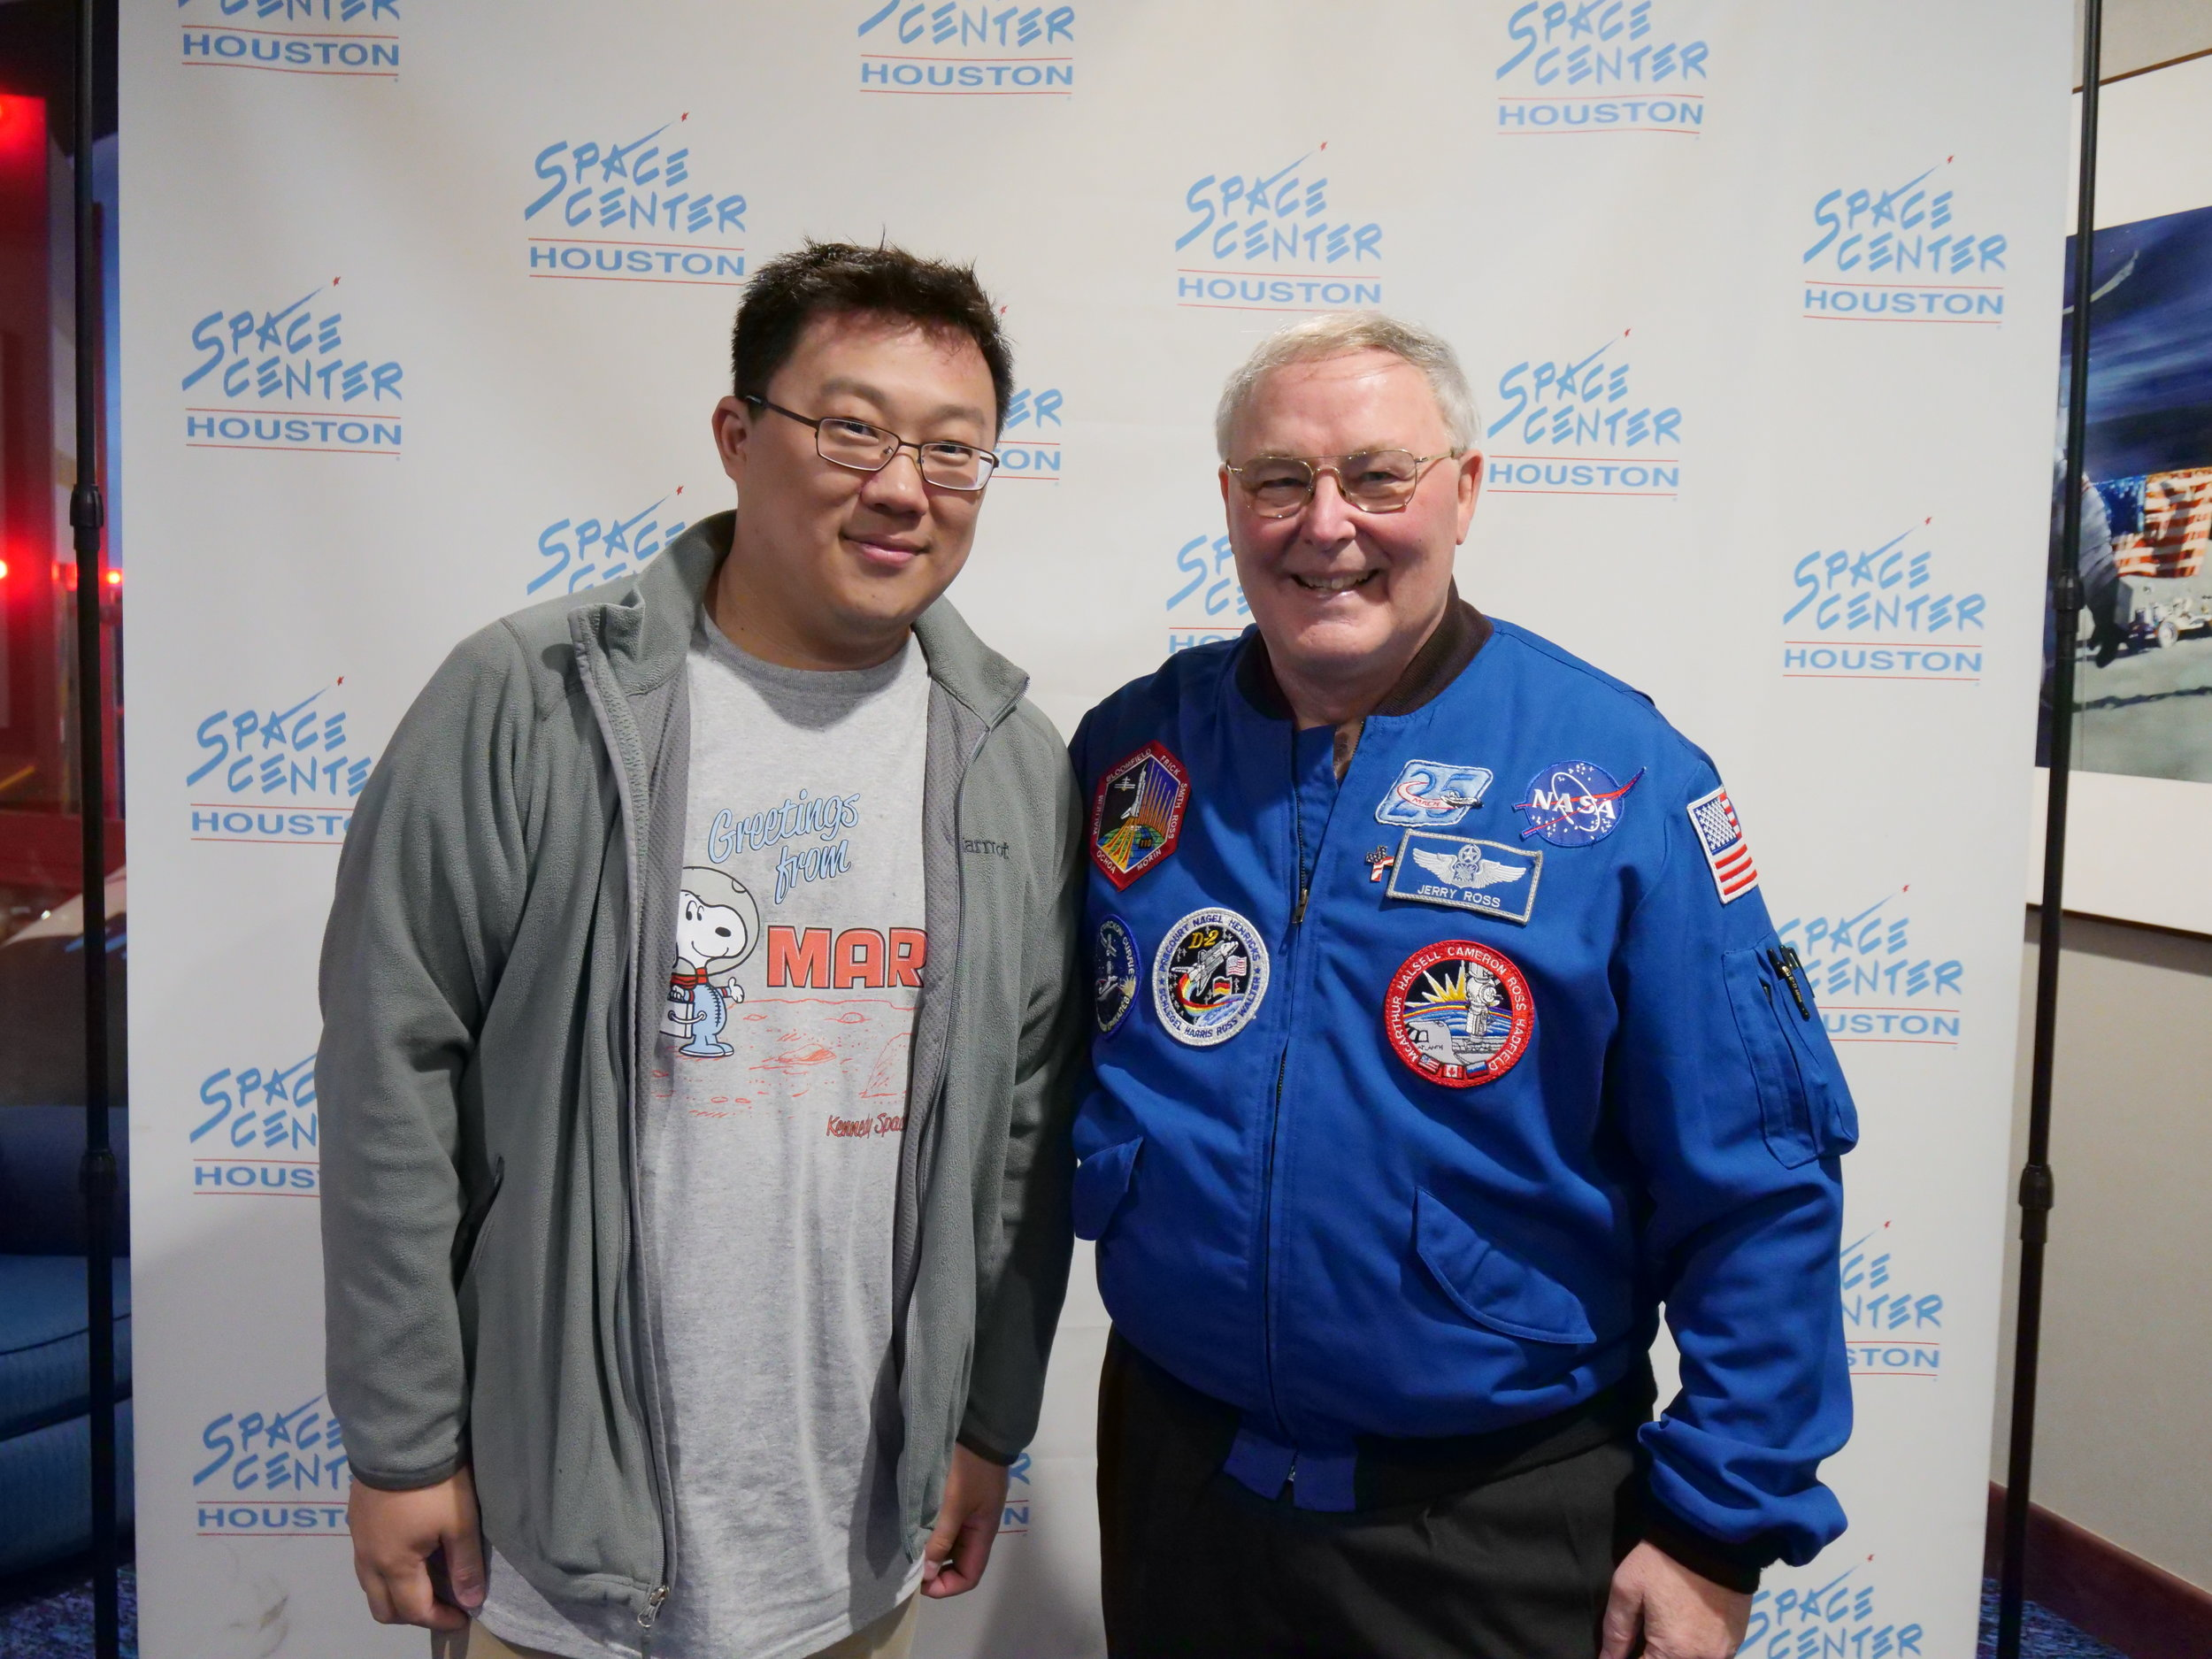 Jerry Ross, Astronaut